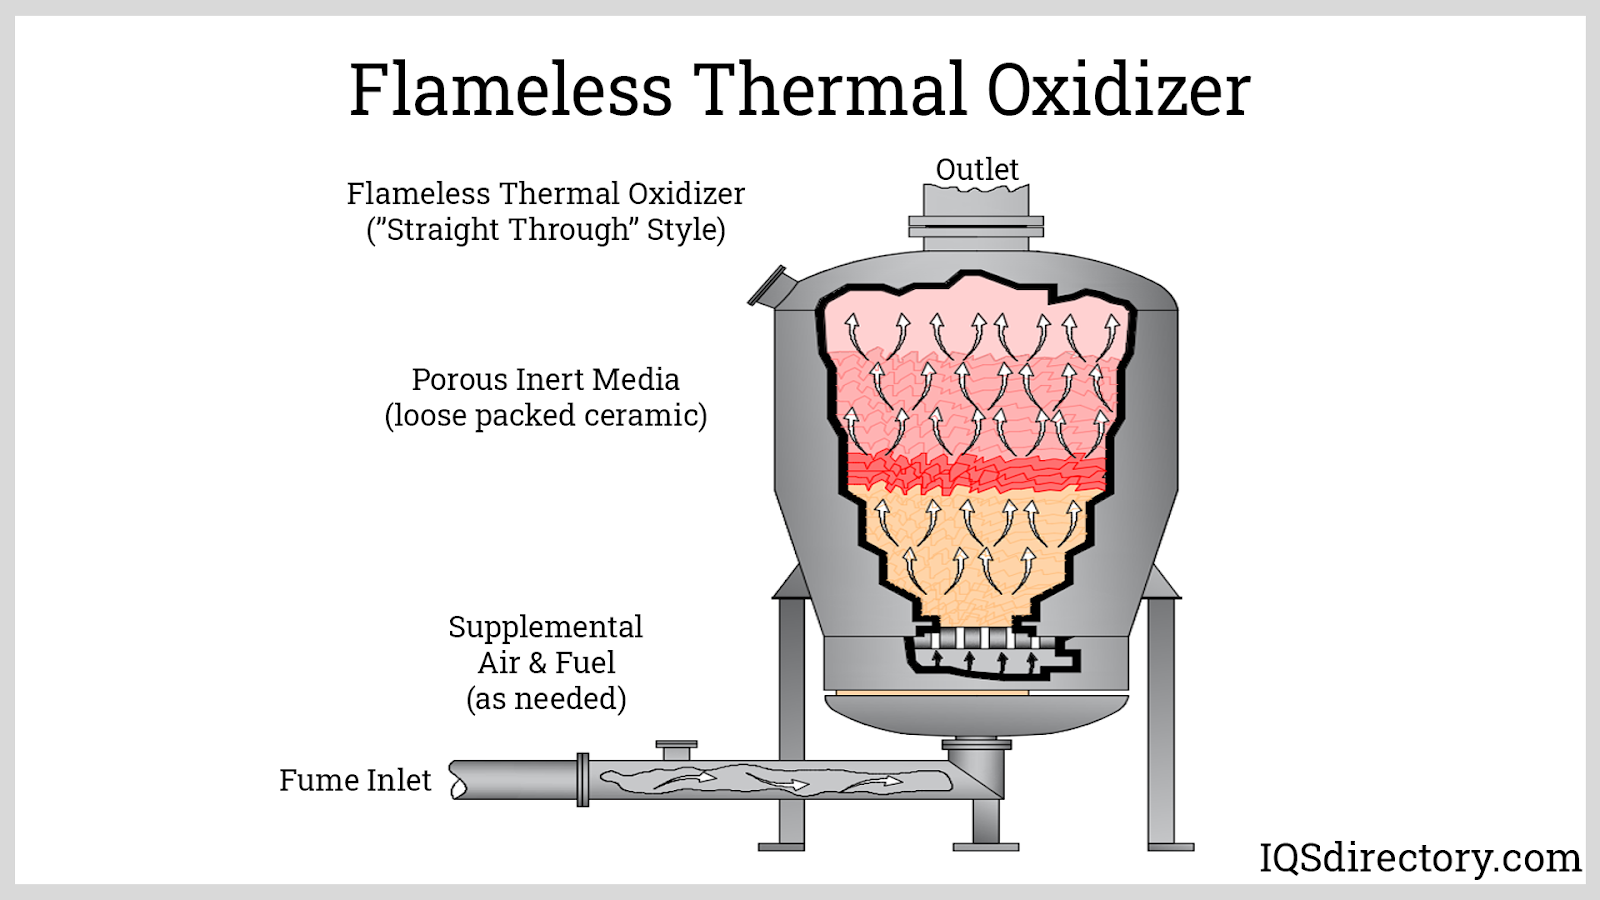 Flameless Thermal Oxidizer